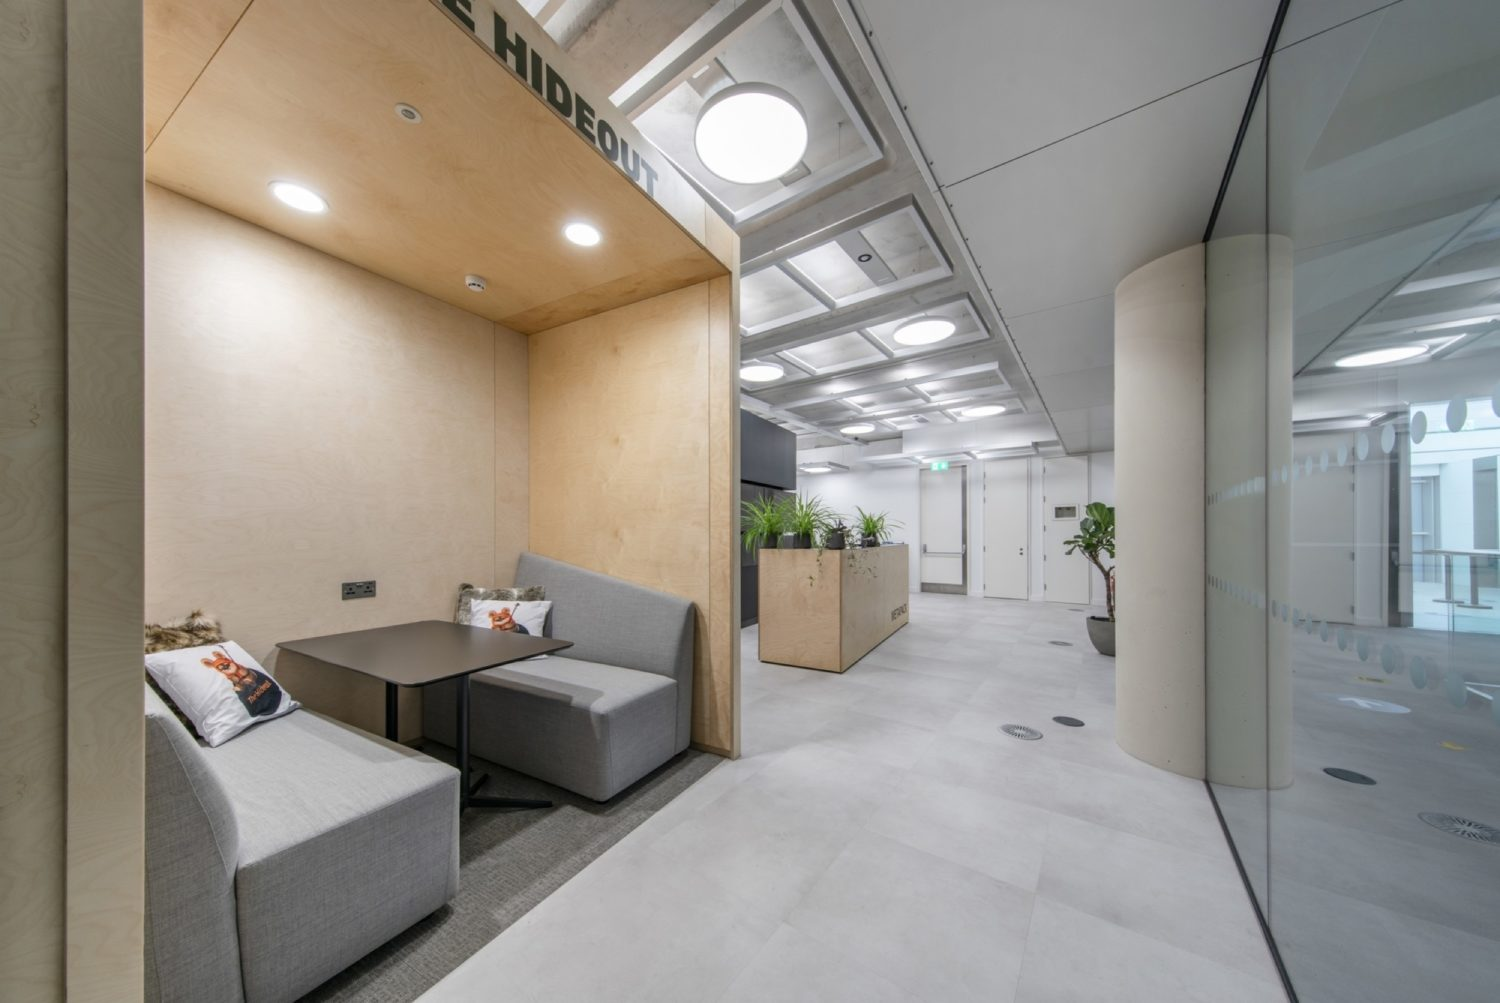 Metapack office pod fit out